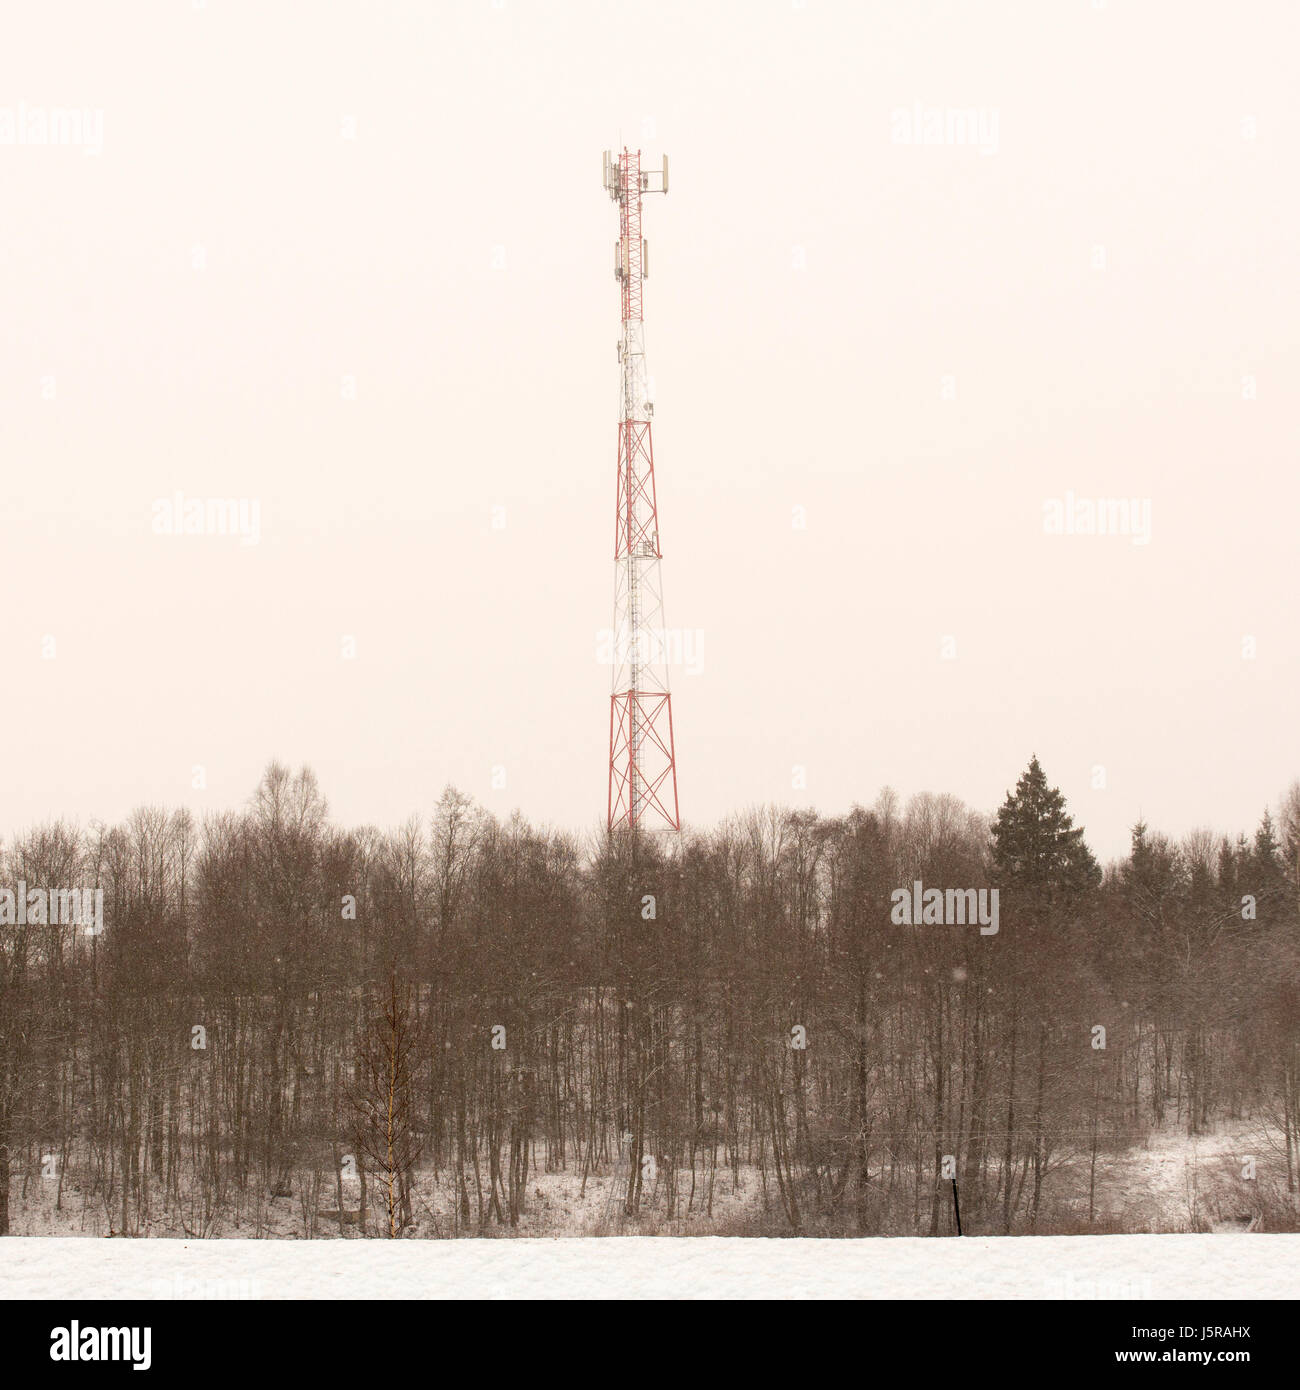 Telecommunication tower in winter - Stock Image